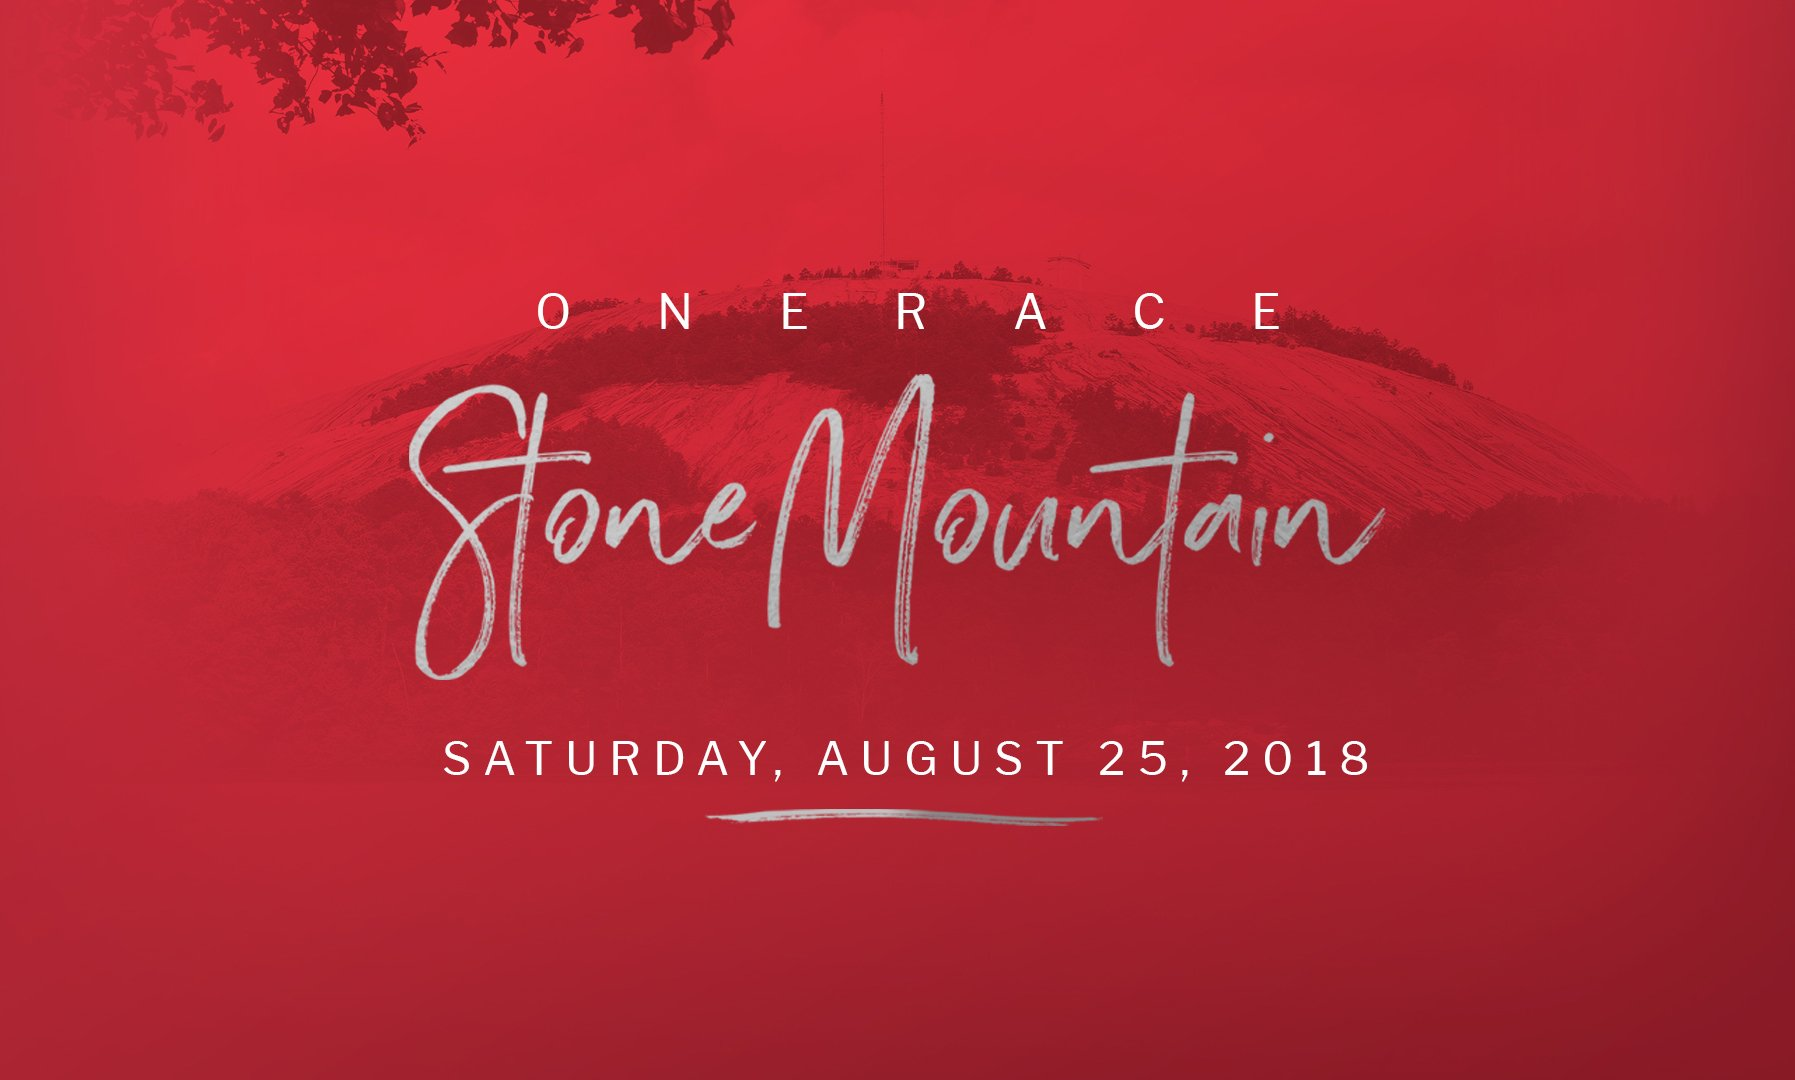 One race gathering at stone mountain